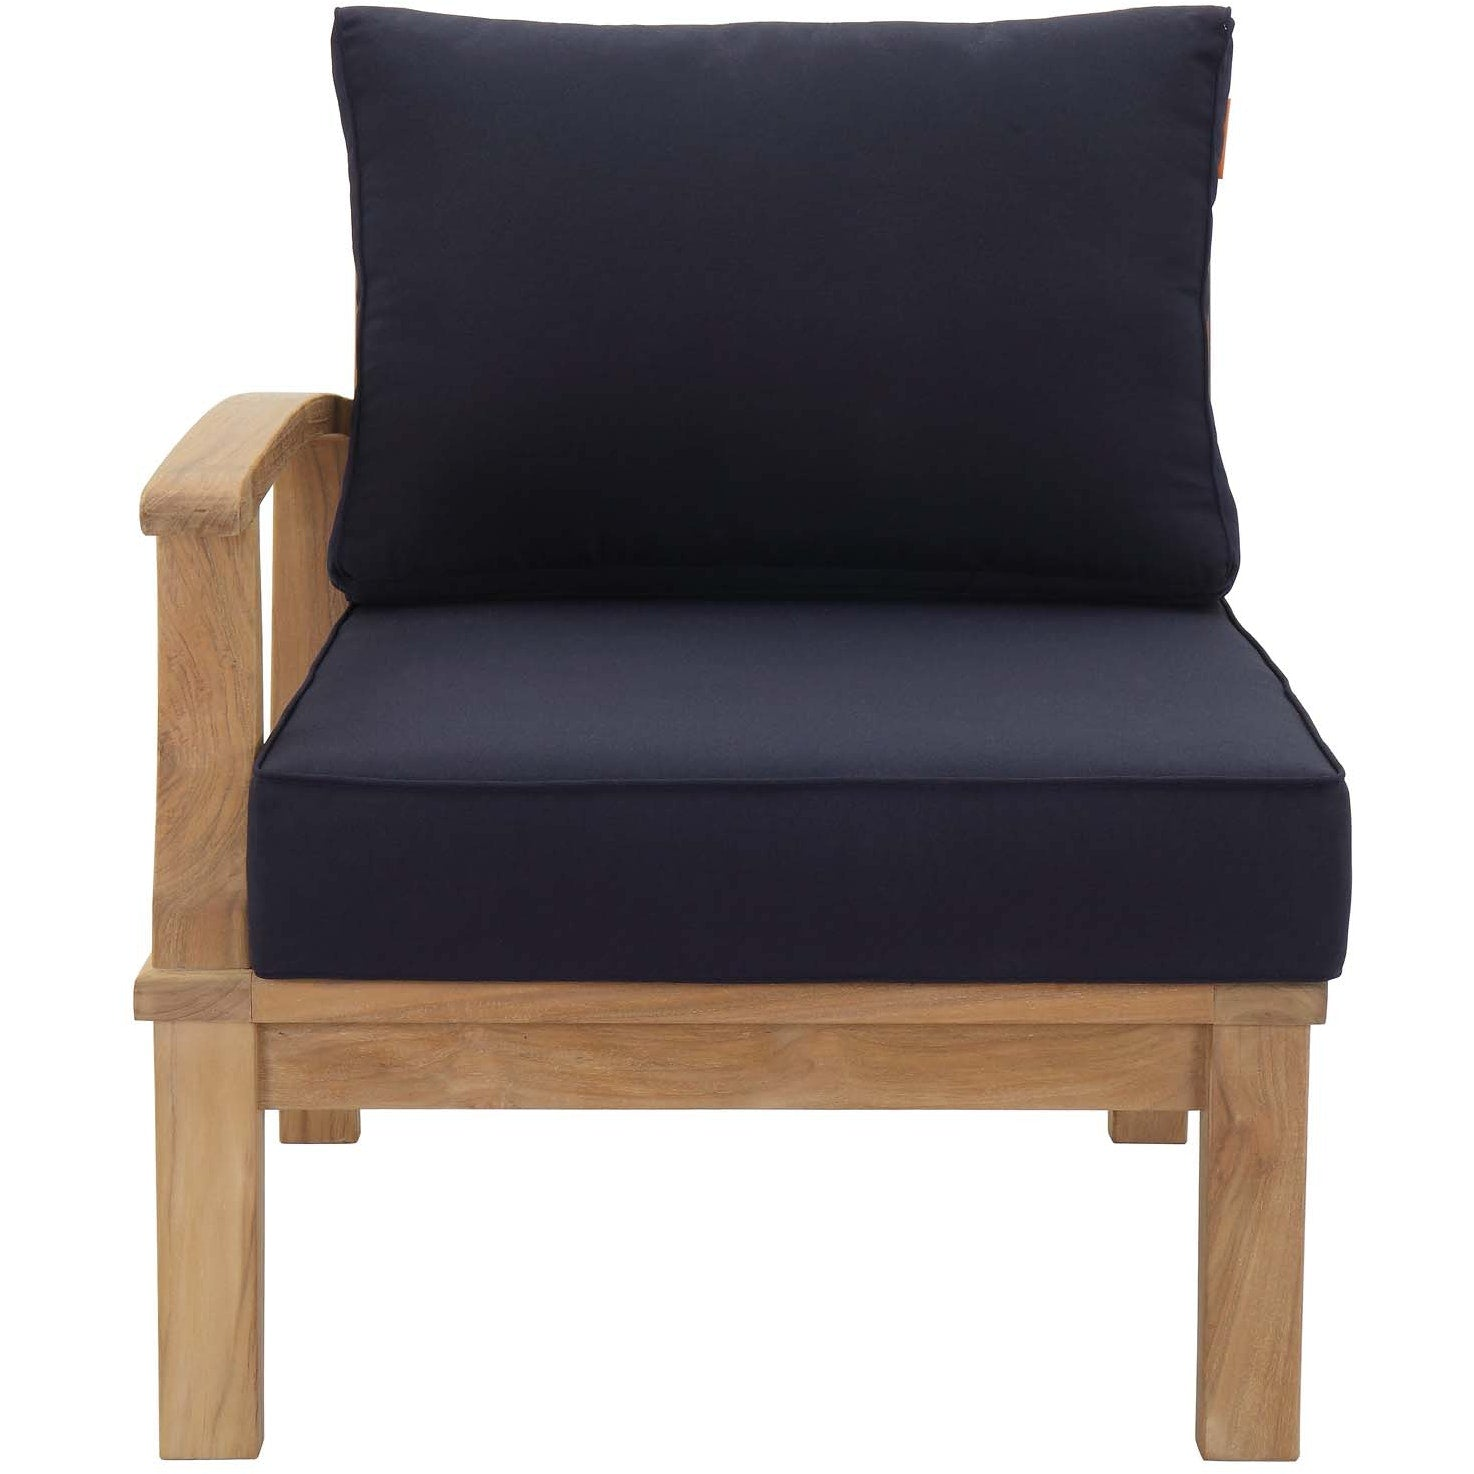 Marina Outdoor Patio Teak Left-Facing Sofa - Natural Navy